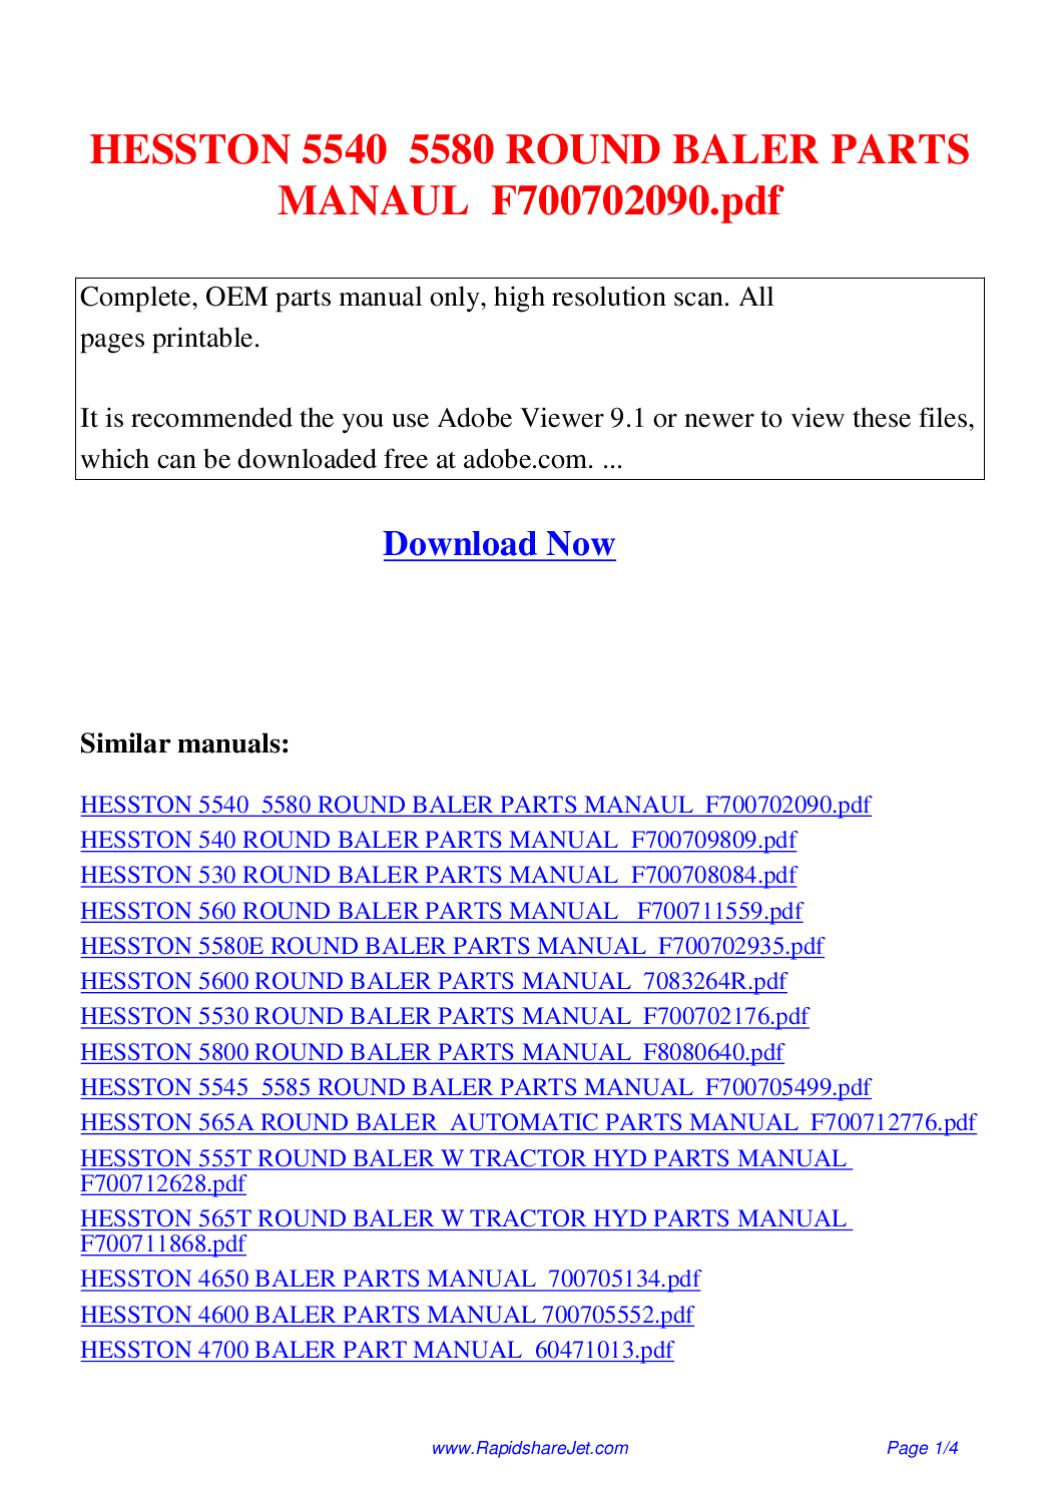 HESSTON 5540 5580 ROUND BALER PARTS MANAUL F700702090 pdf by Hong Lee -  issuu